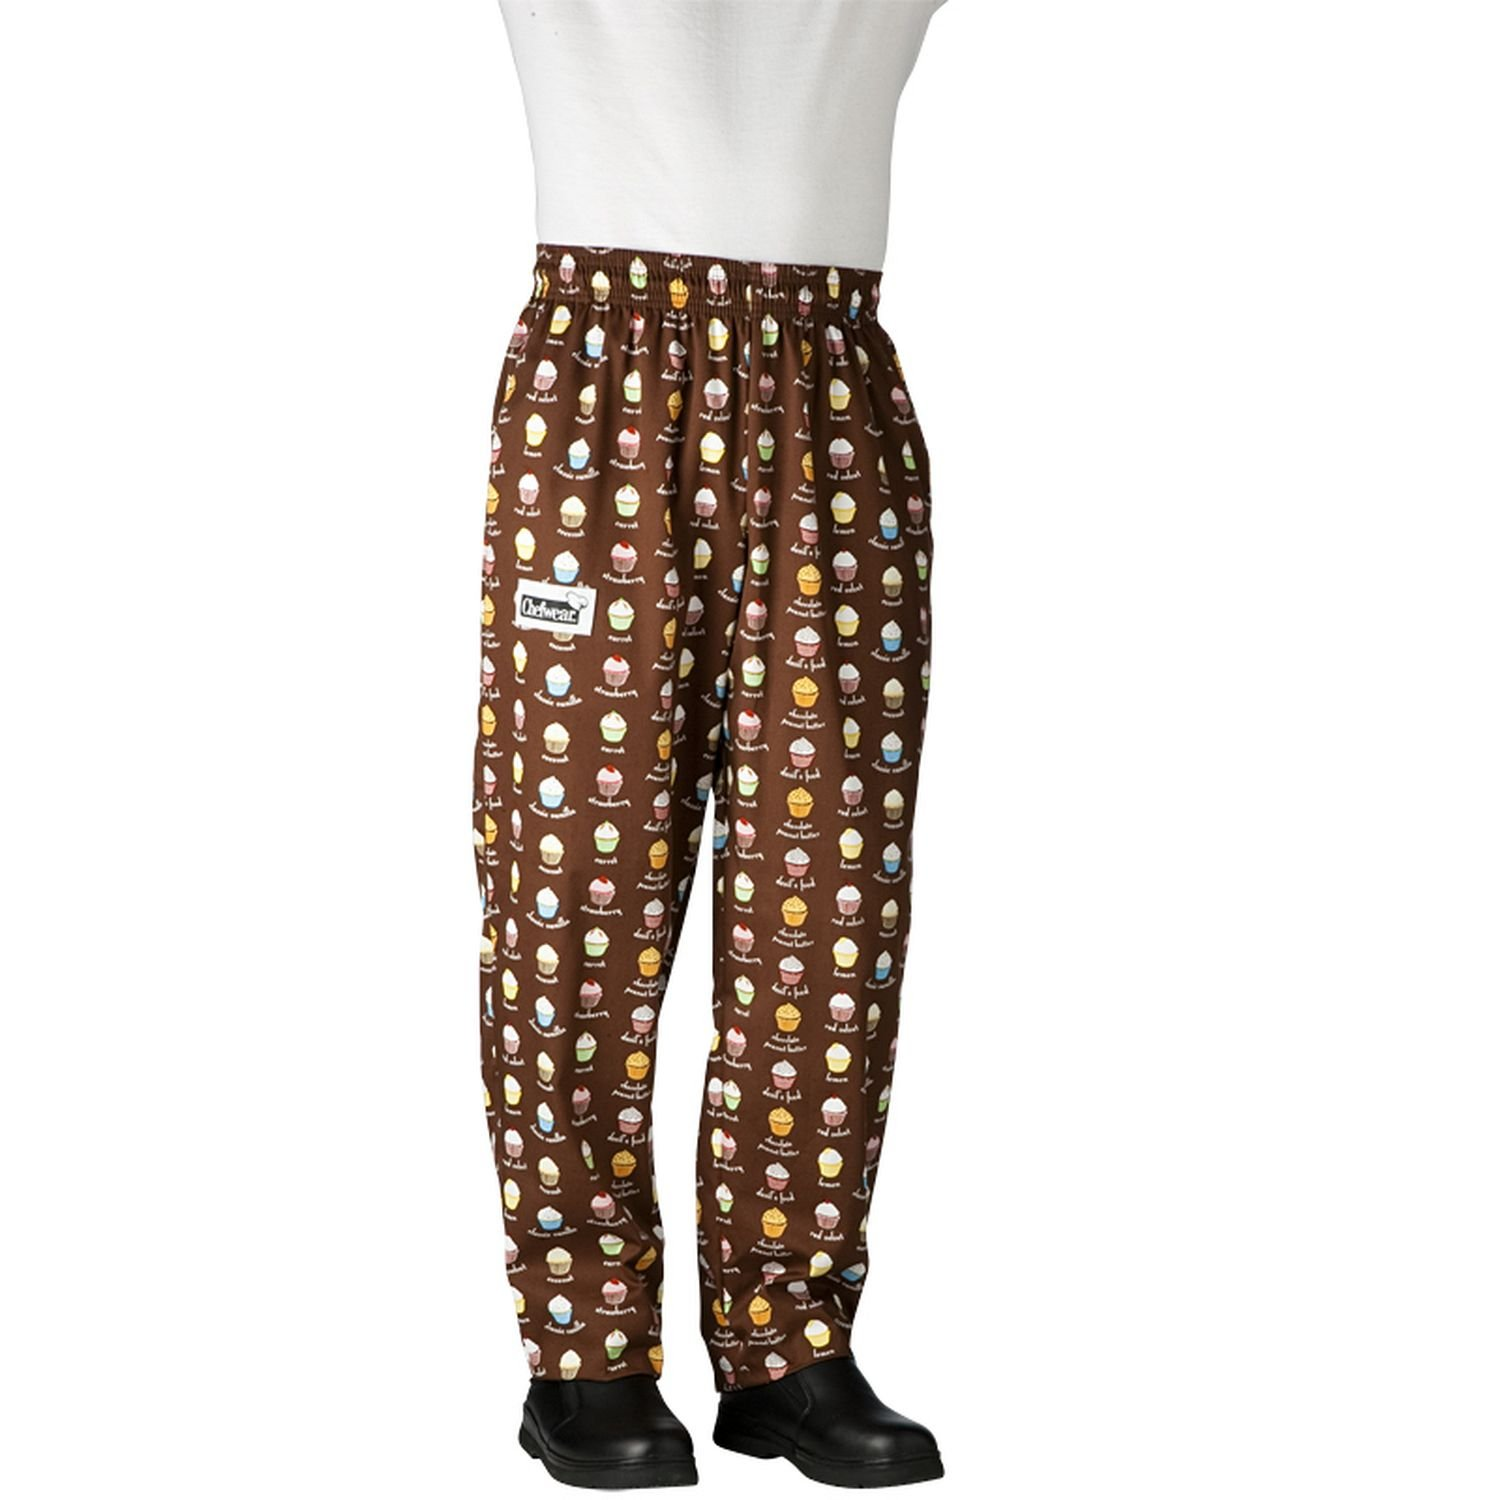 Chefwear 3500-67 Men's Ultimate Chef Pant 2XL Cupcake